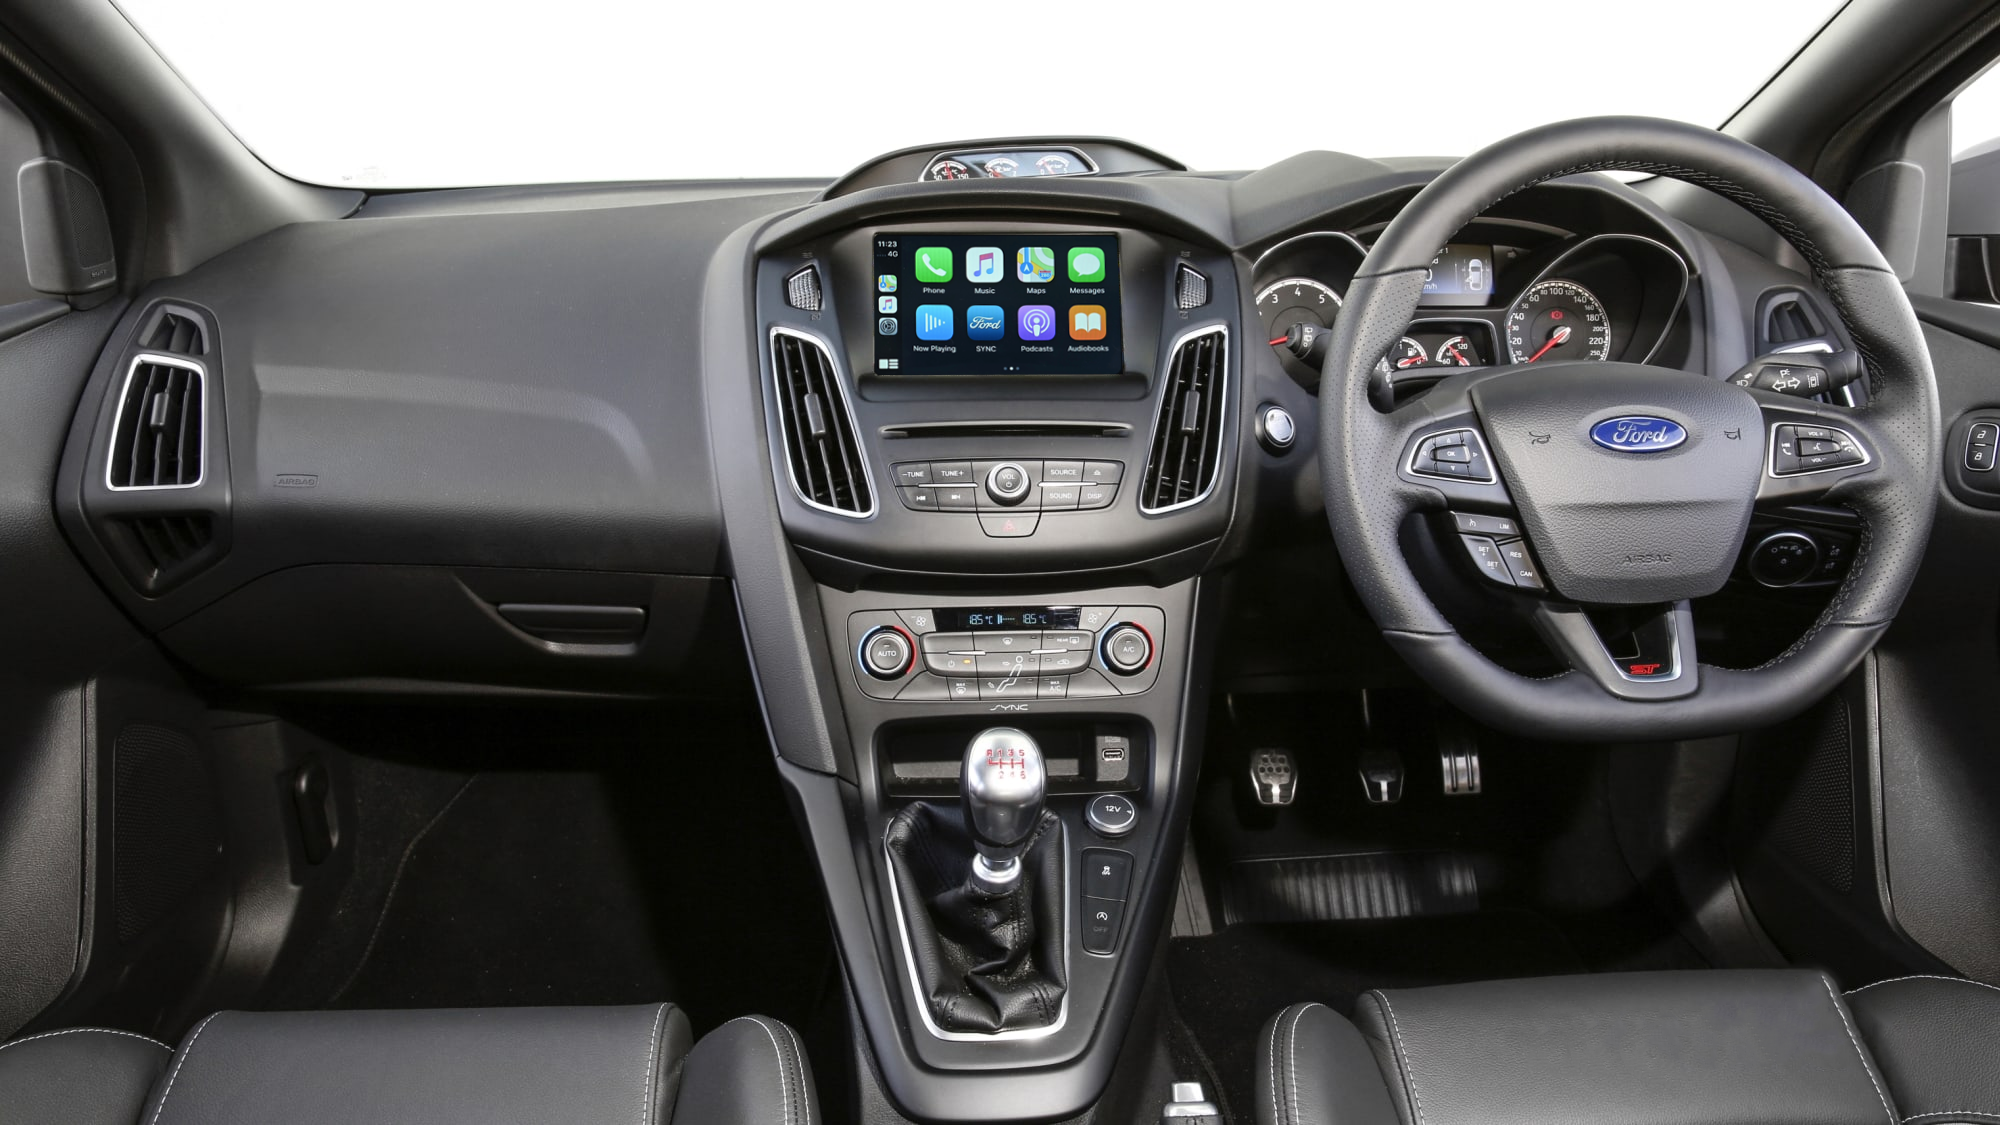 Auto Retrofit - Ford MyFord Touch Sync2 System Apple CarPlay & Android Auto Integration